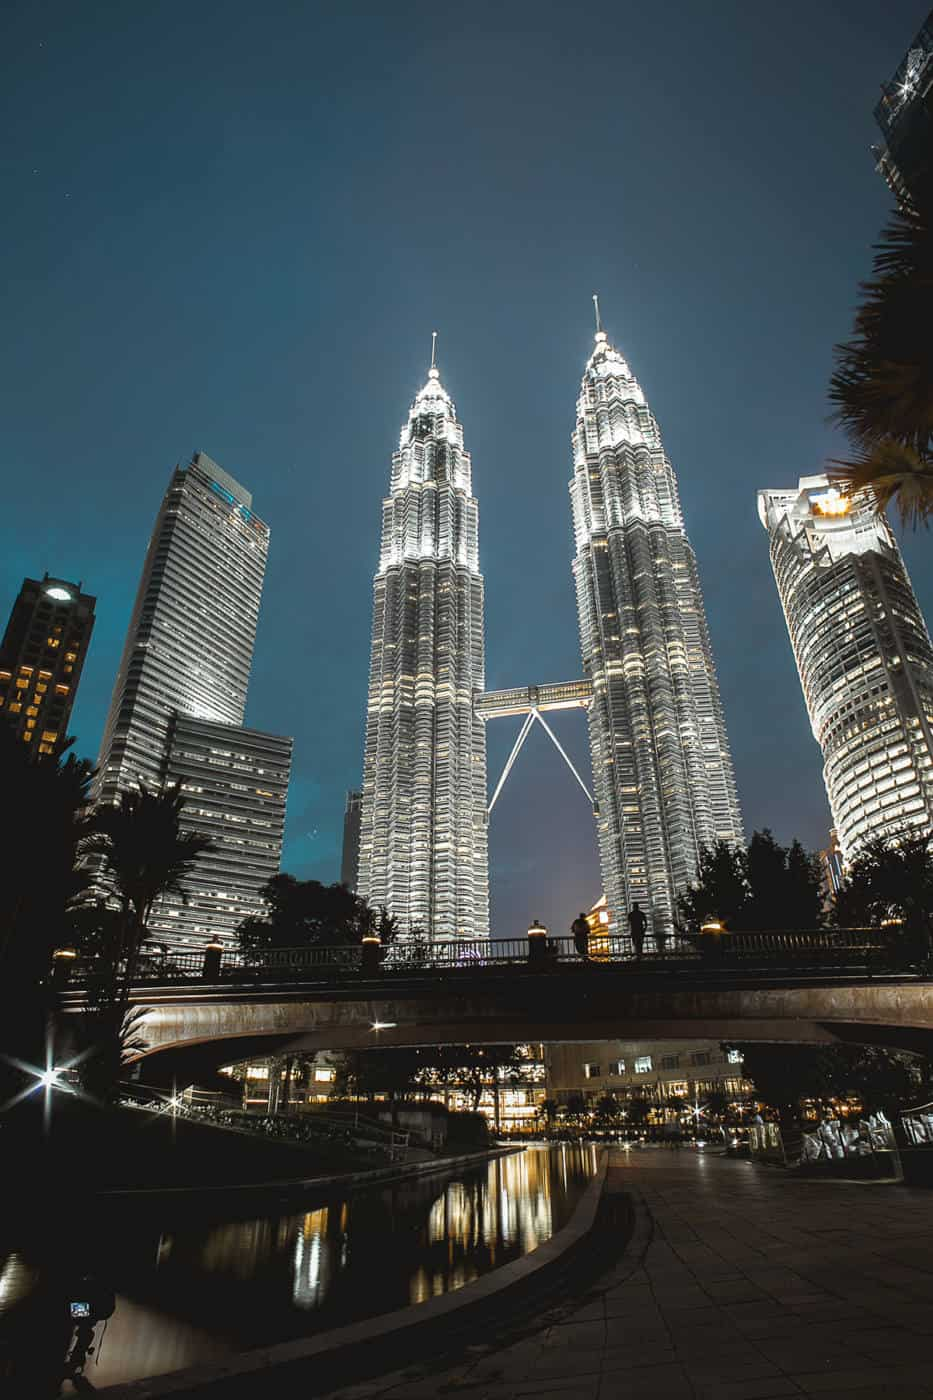 The Petronas Towers in Kuala Lumpur Malaysia at blue hour